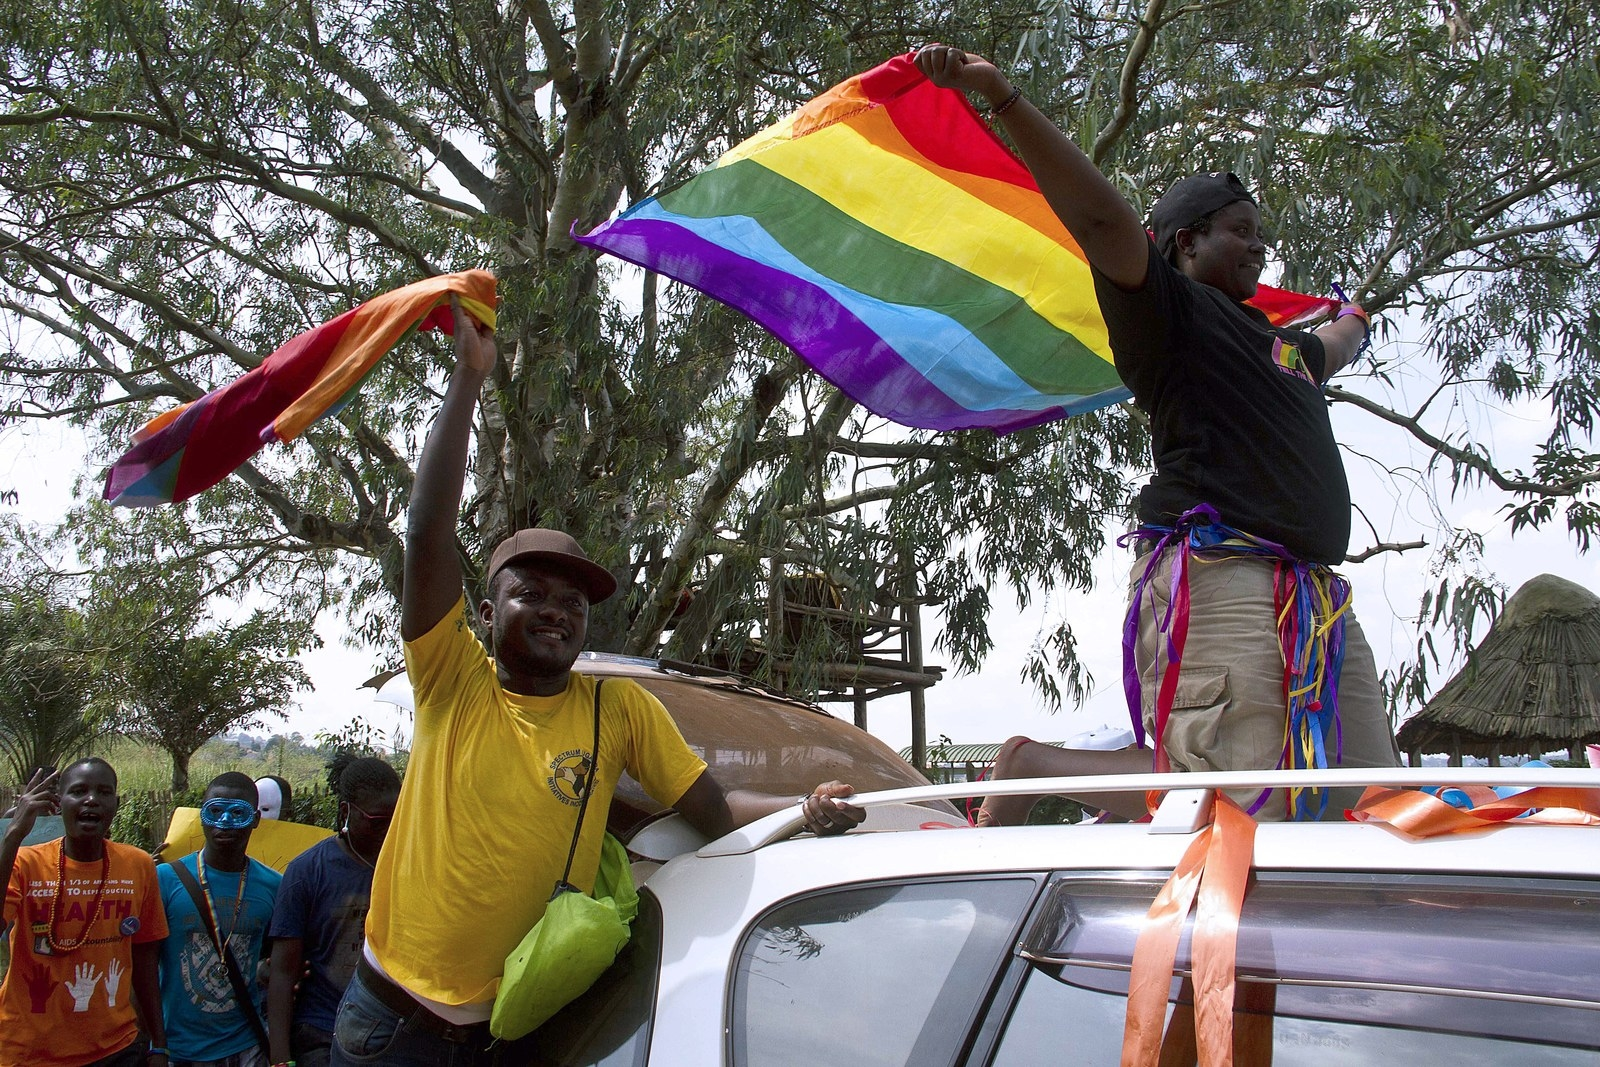 Police Shut Down An LGBT Pride Parade In Uganda Before It Even Began